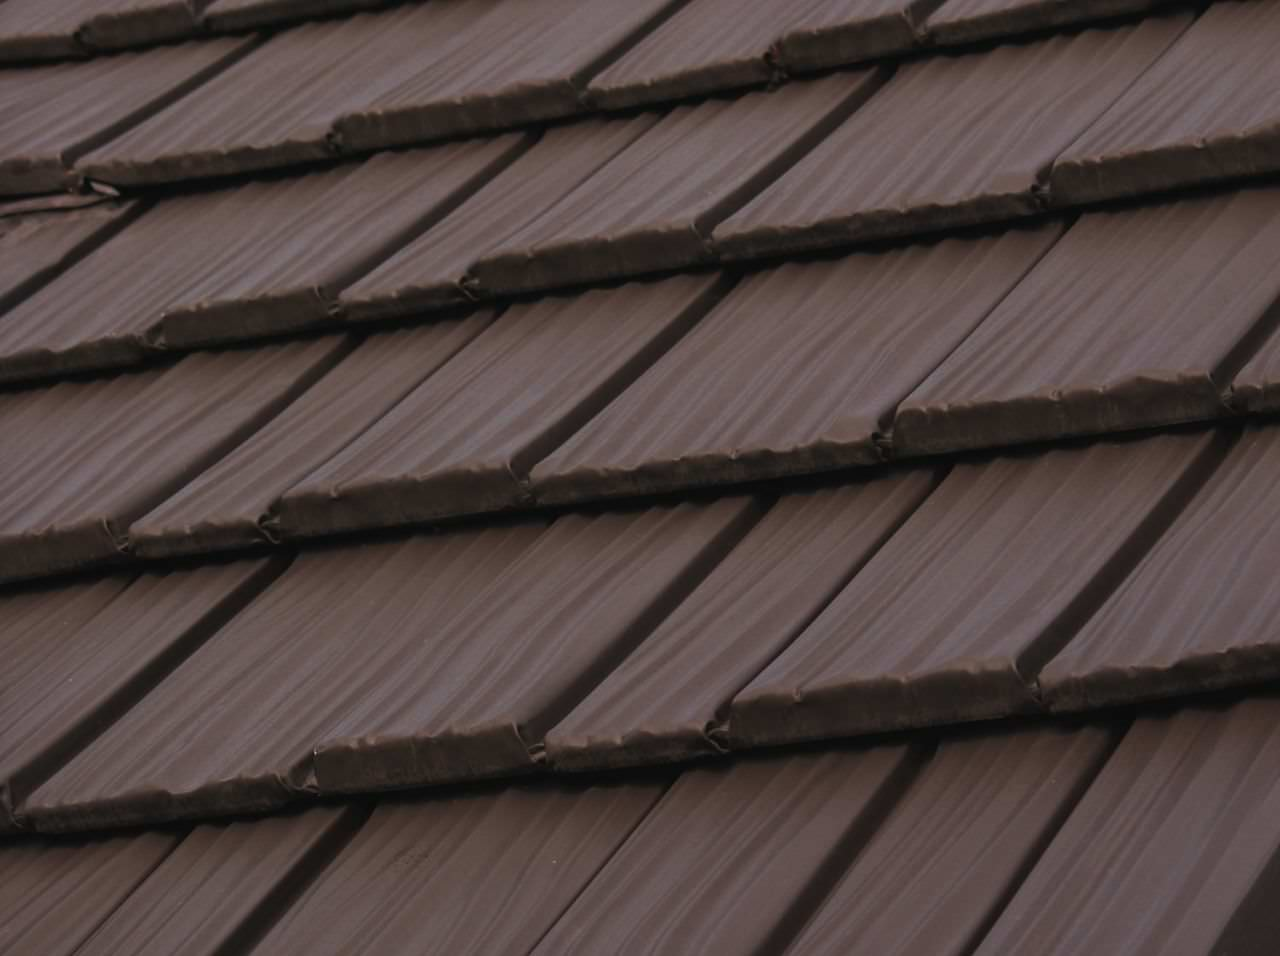 Classic Metal Roofing Systems Sweepstakes Has Ended